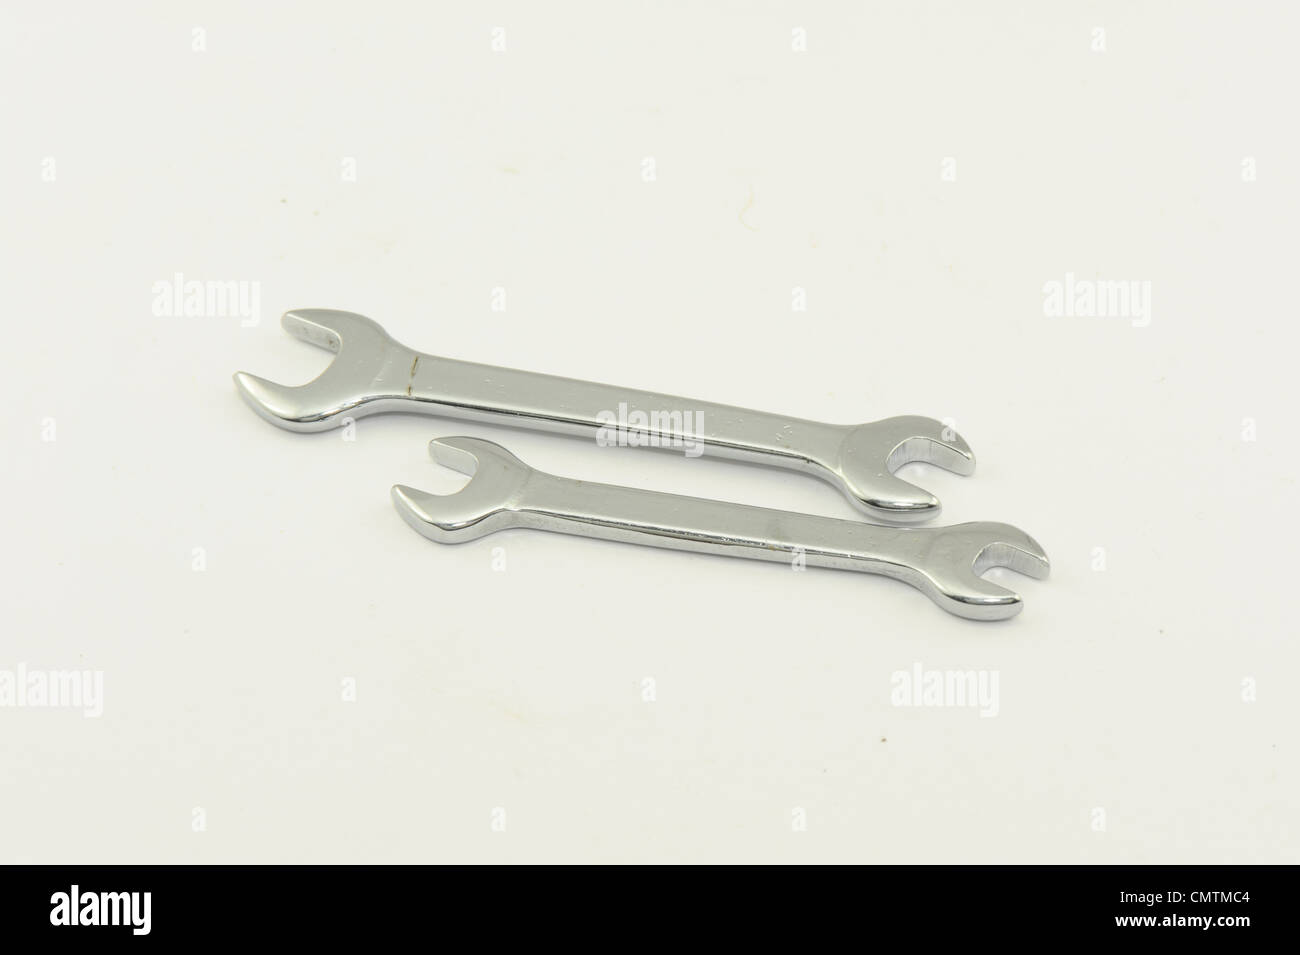 tool mini spanners taken on a white background - Stock Image